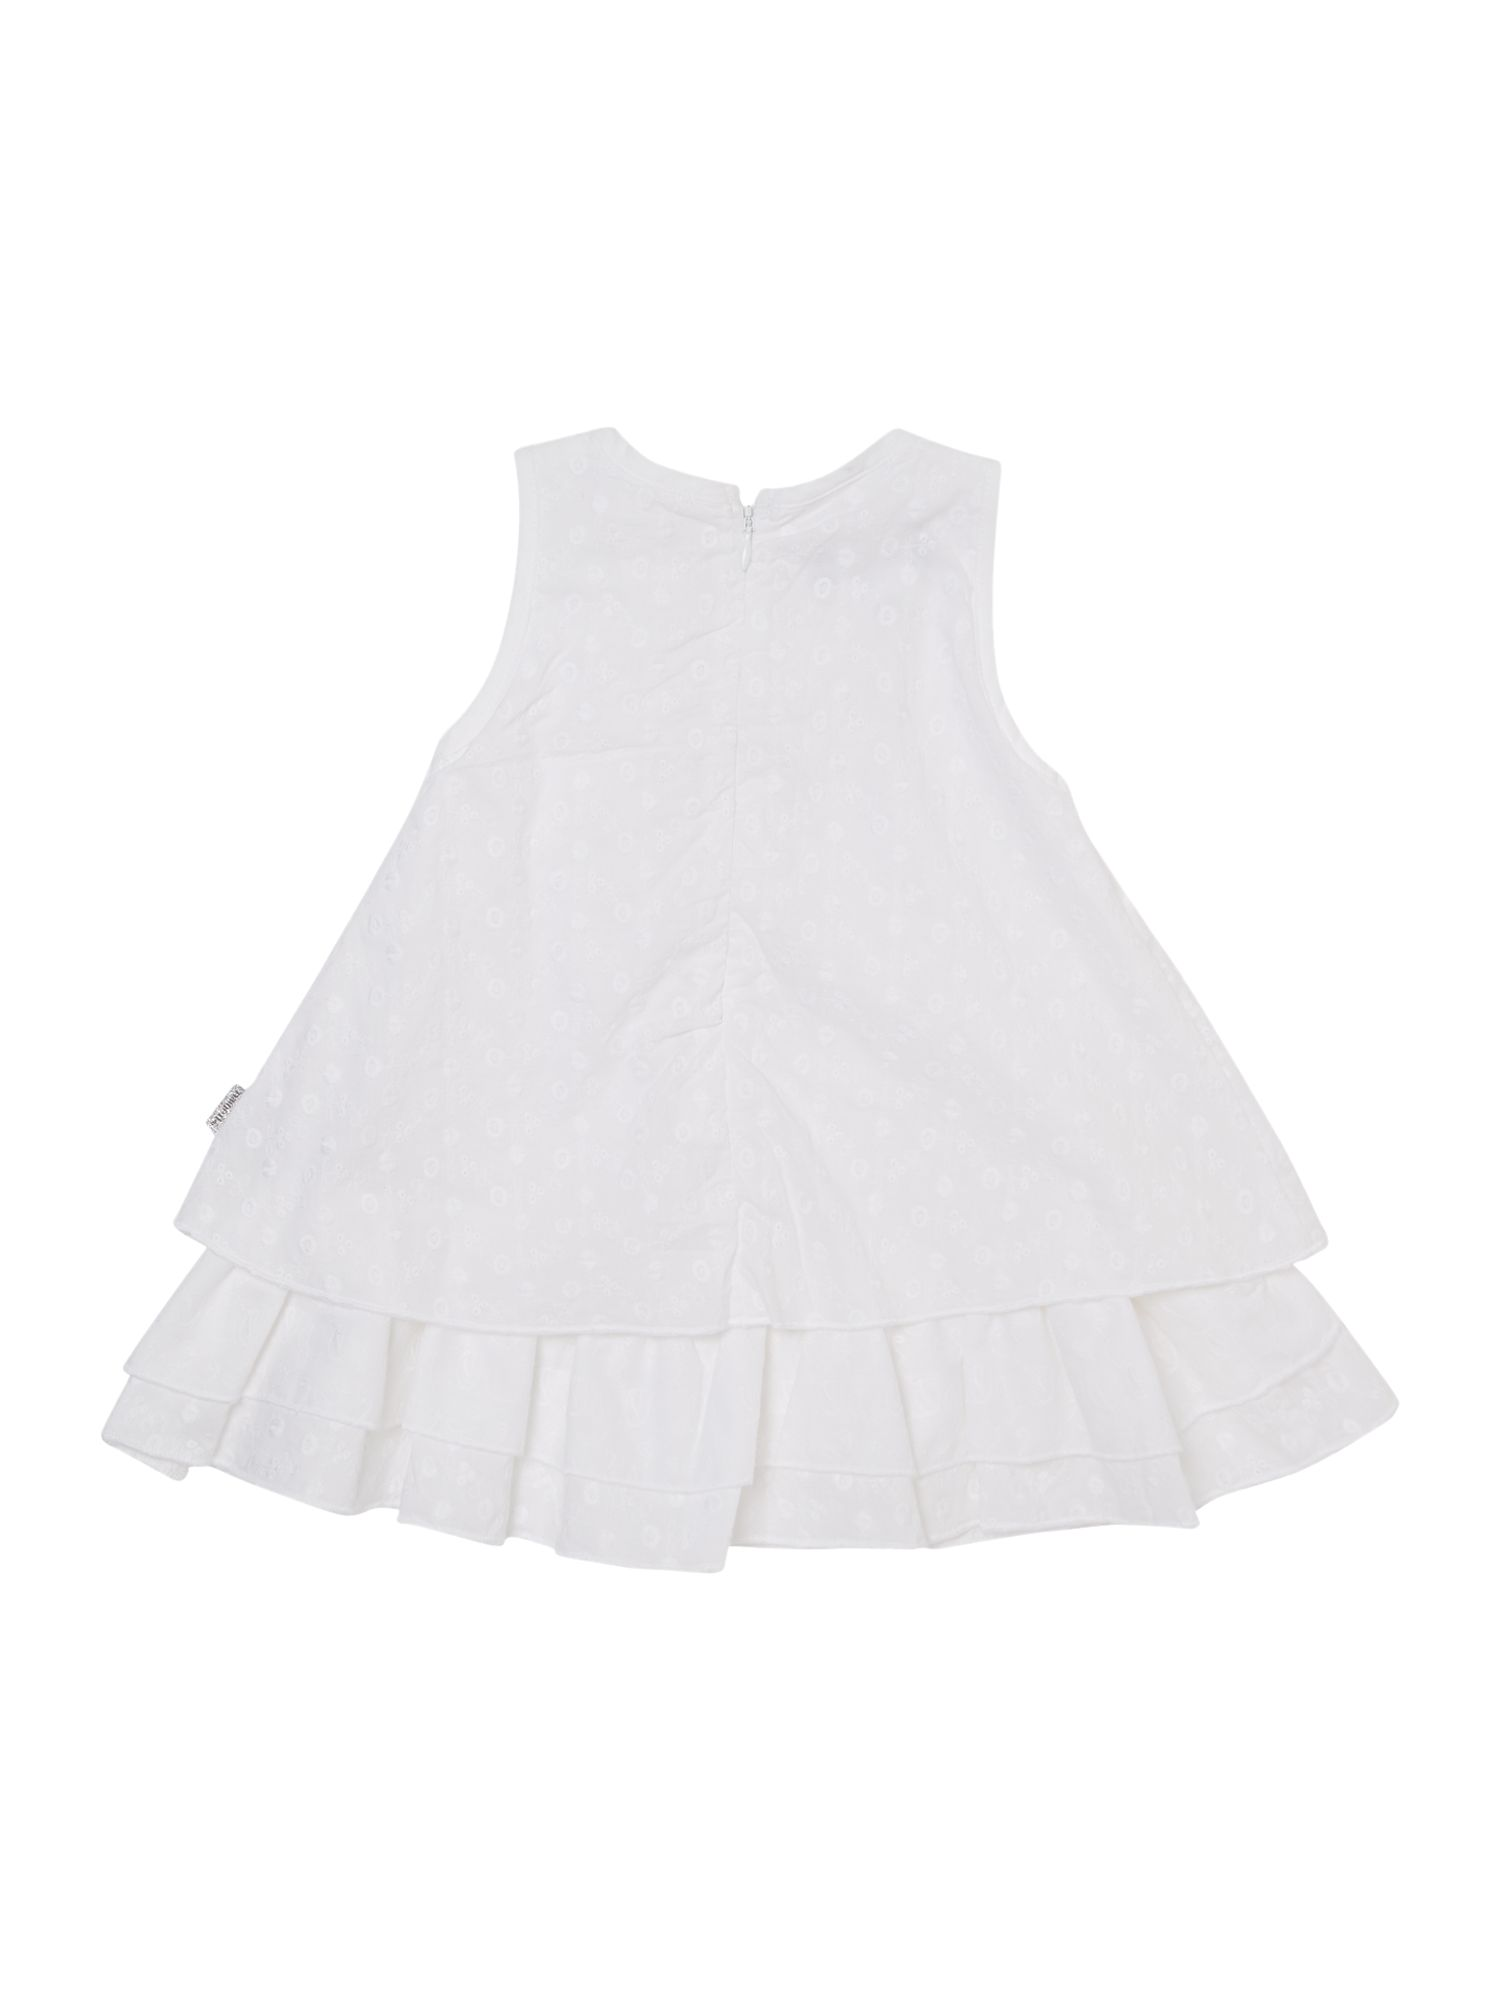 Girls broderie layered dress